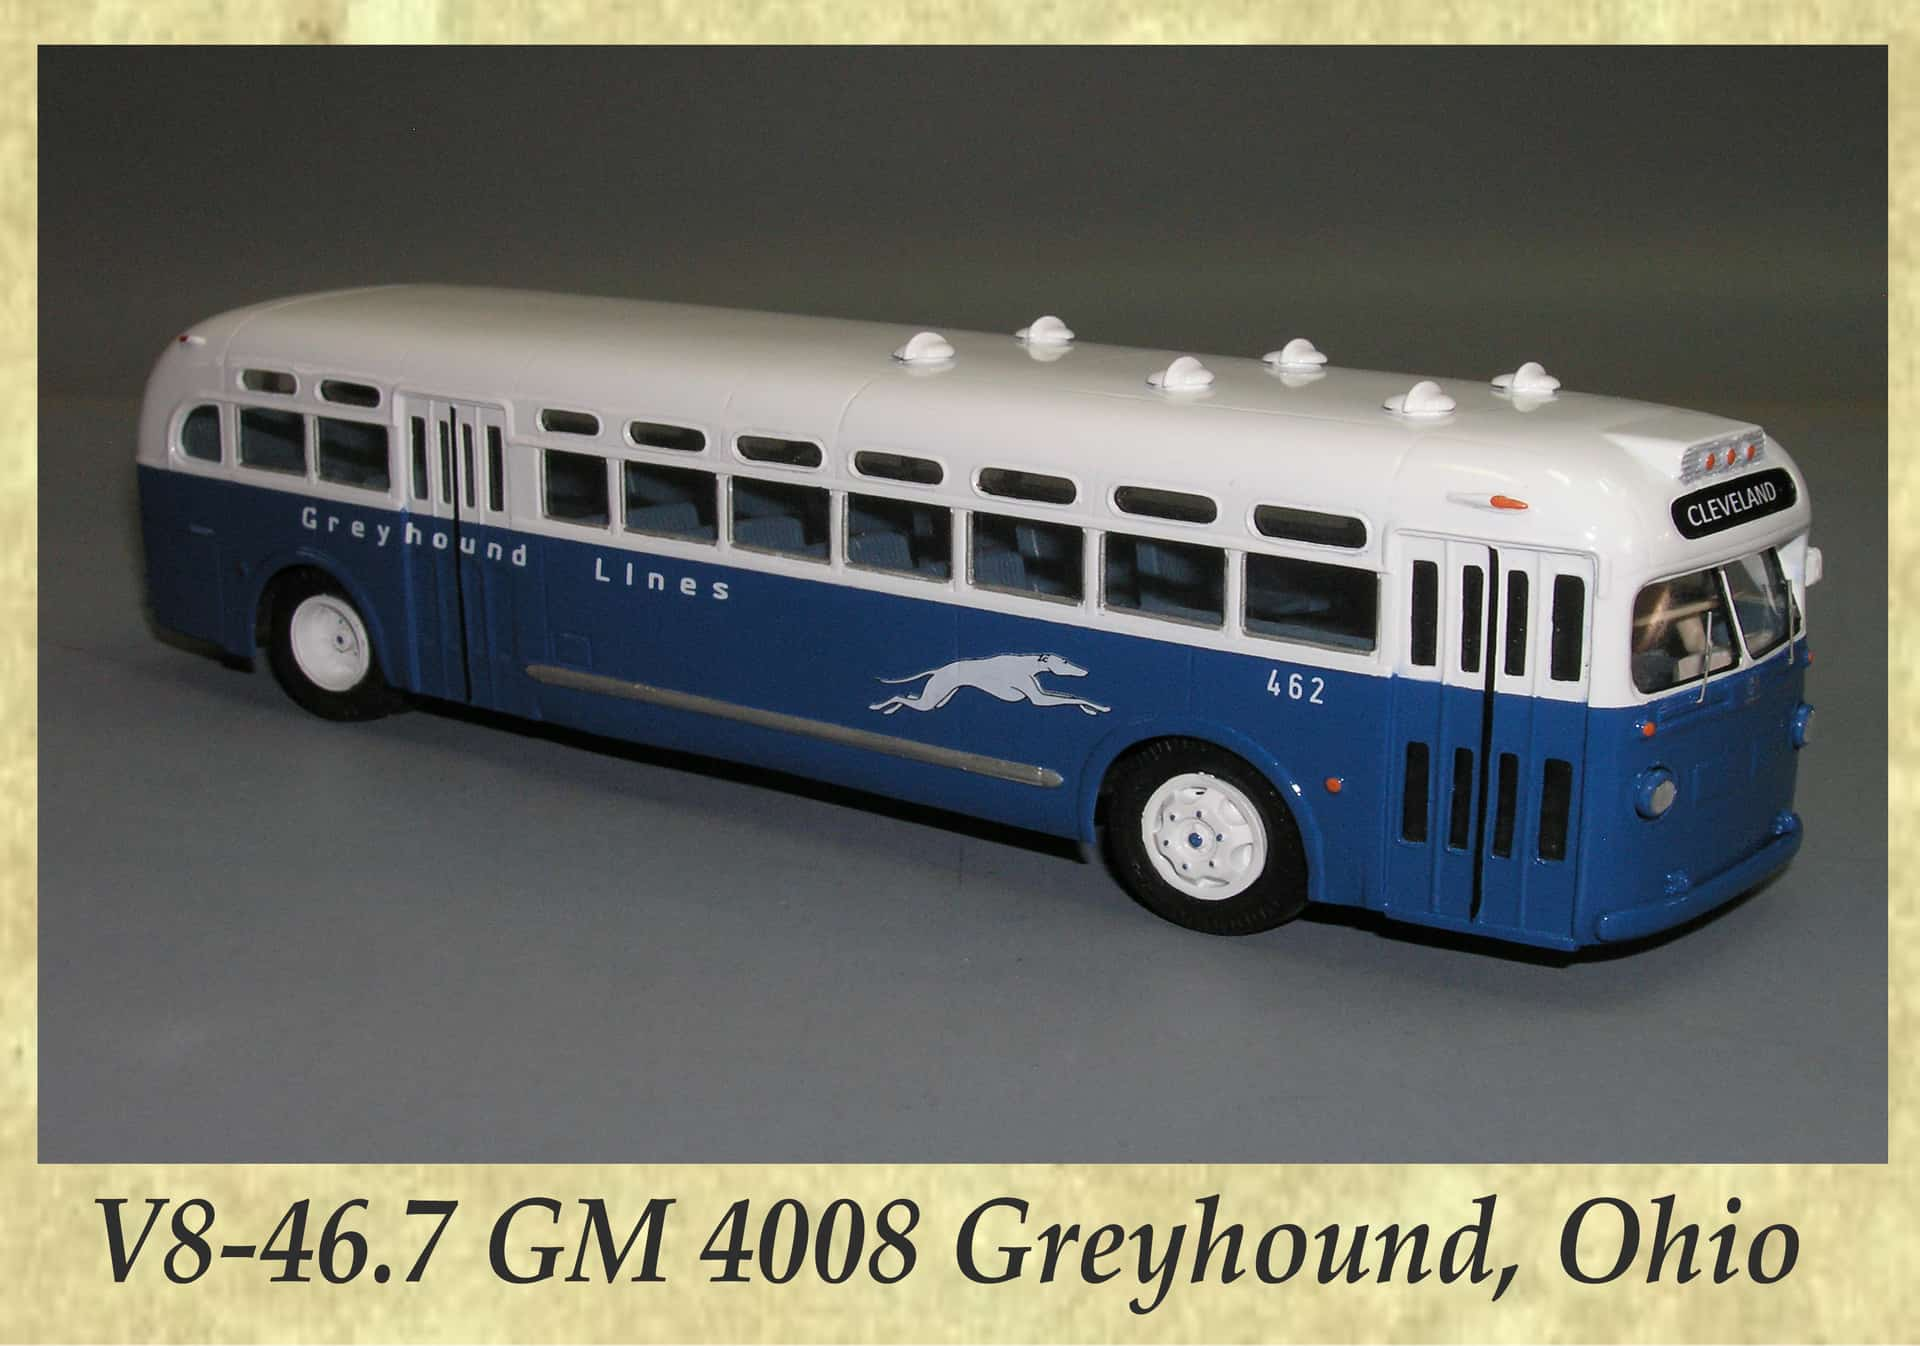 V8-46.7 GM 4008 Greyhound, Ohio